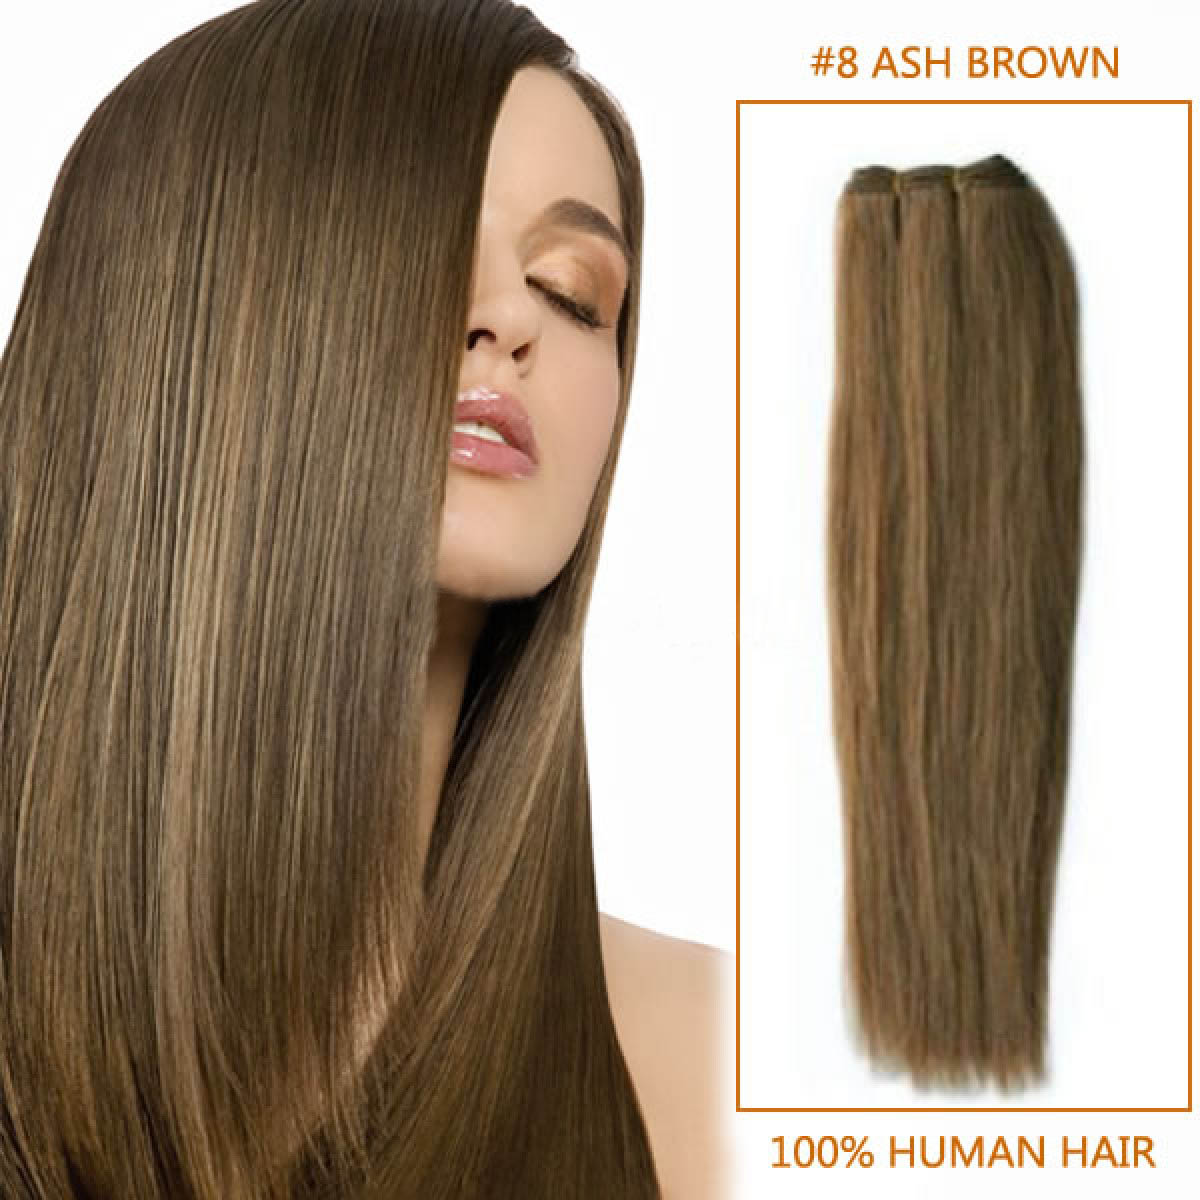 18 Inch 8 Ash Brown Straight Indian Remy Hair Wefts